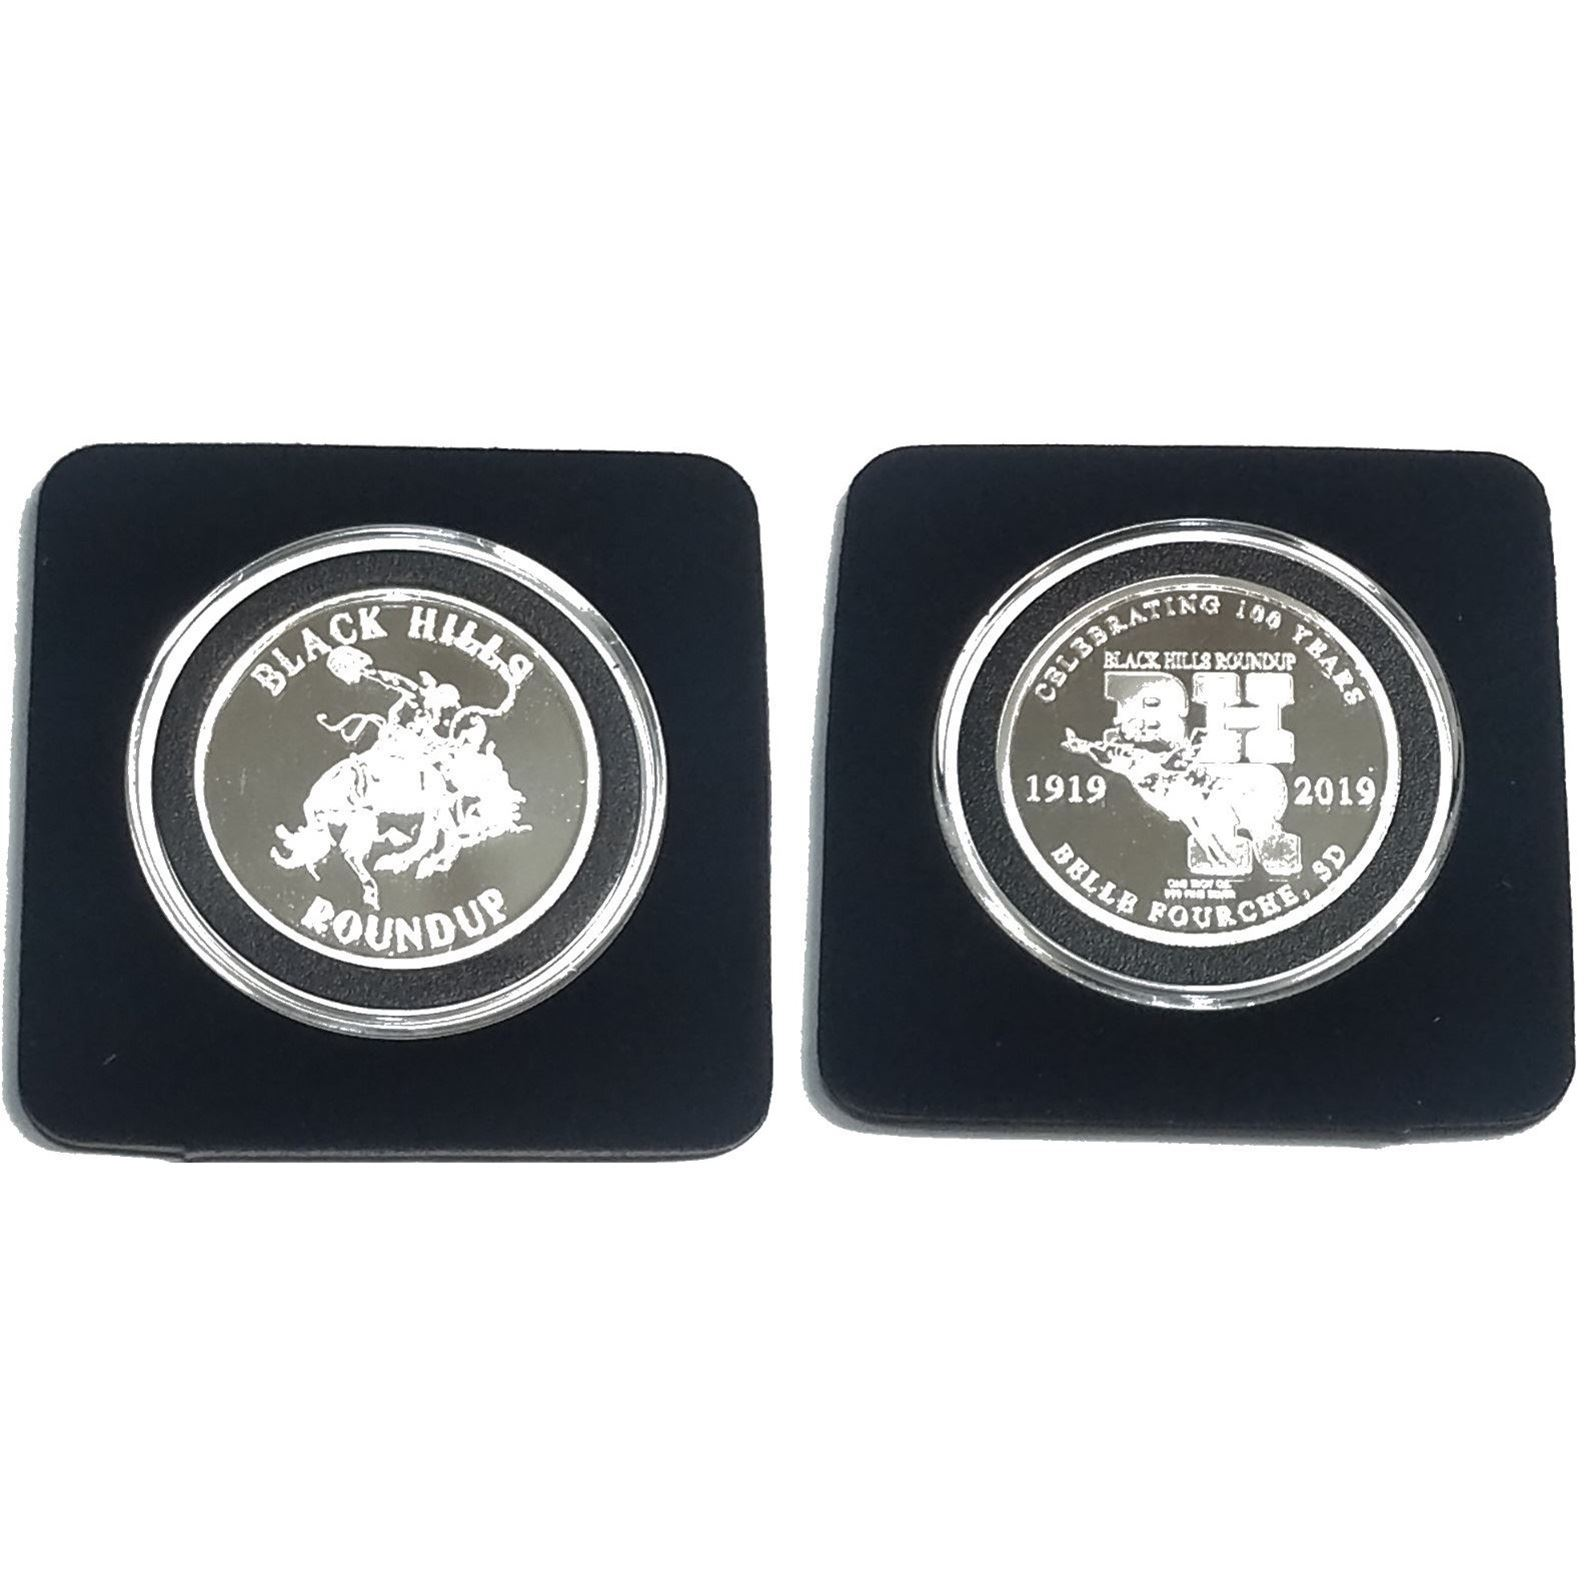 Black Hills Roundup Silver Coin